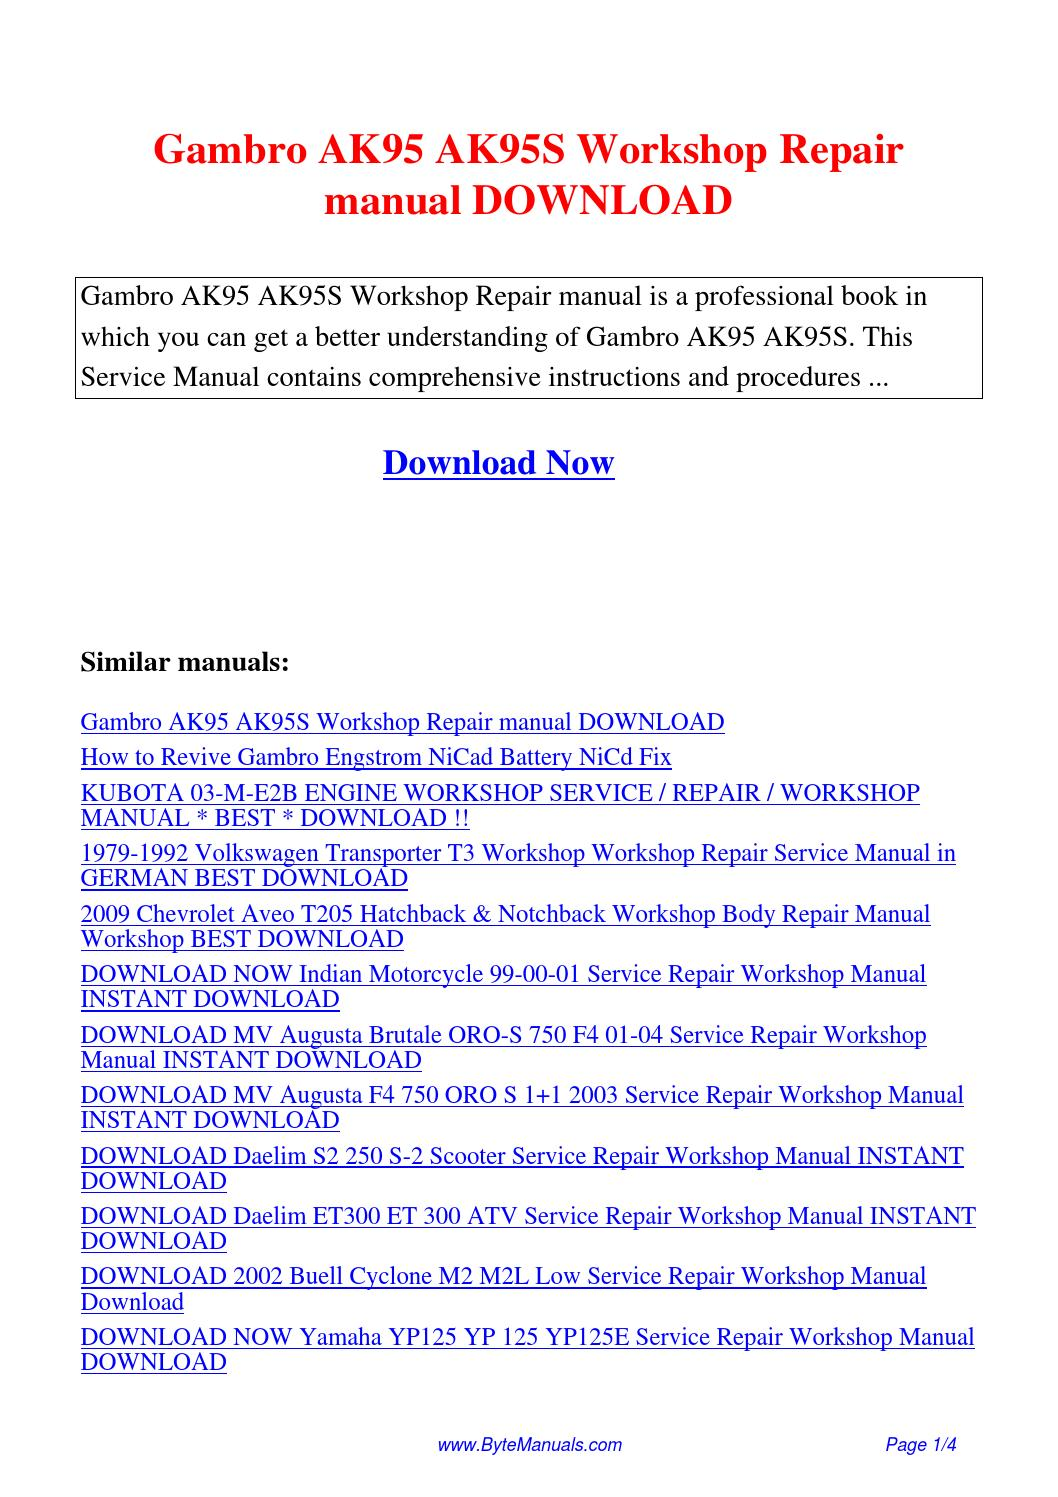 download now yamaha yp125 yp 125 yp125e service repair workshop manual download